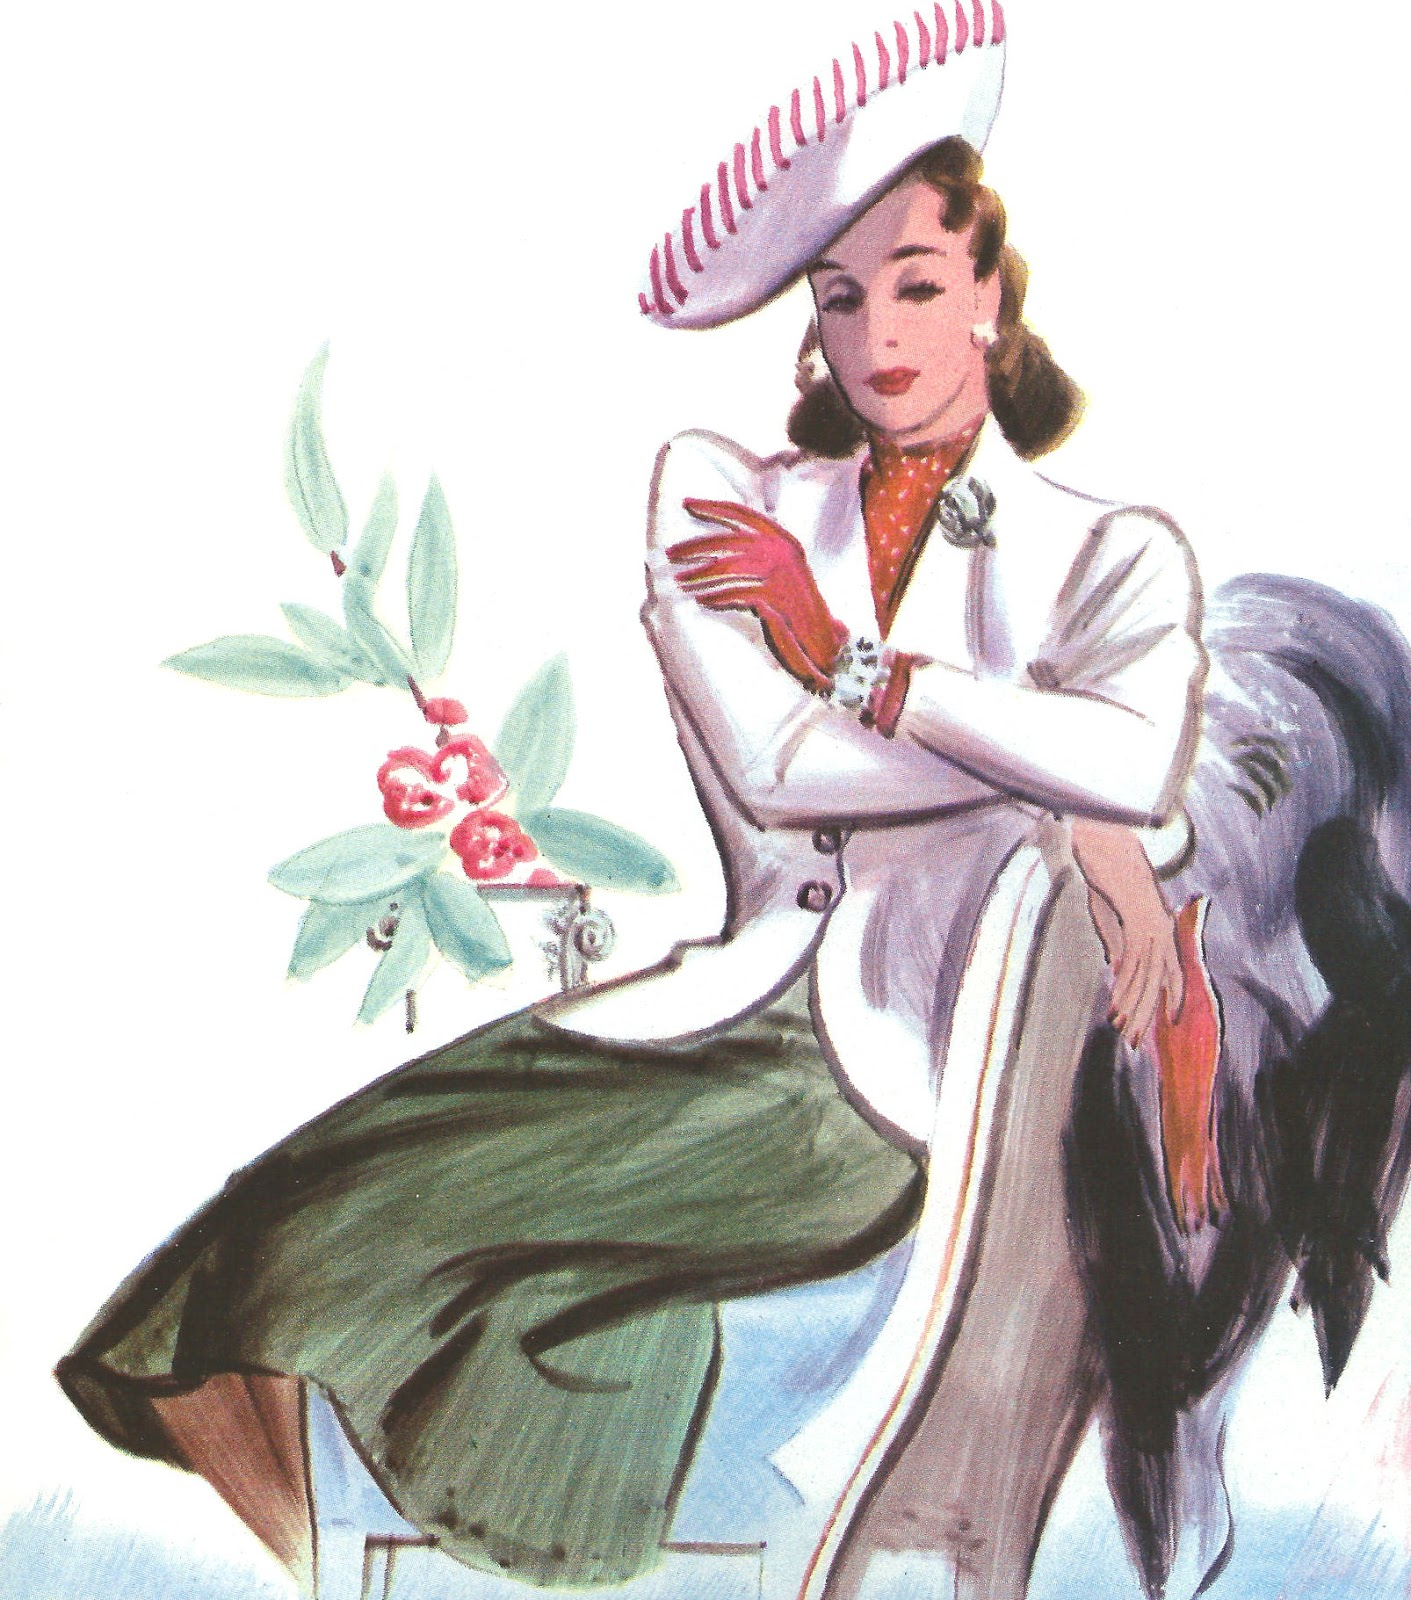 1940 Women S Fashion Clip Art From Vintage Car Catalog Green Skirt.